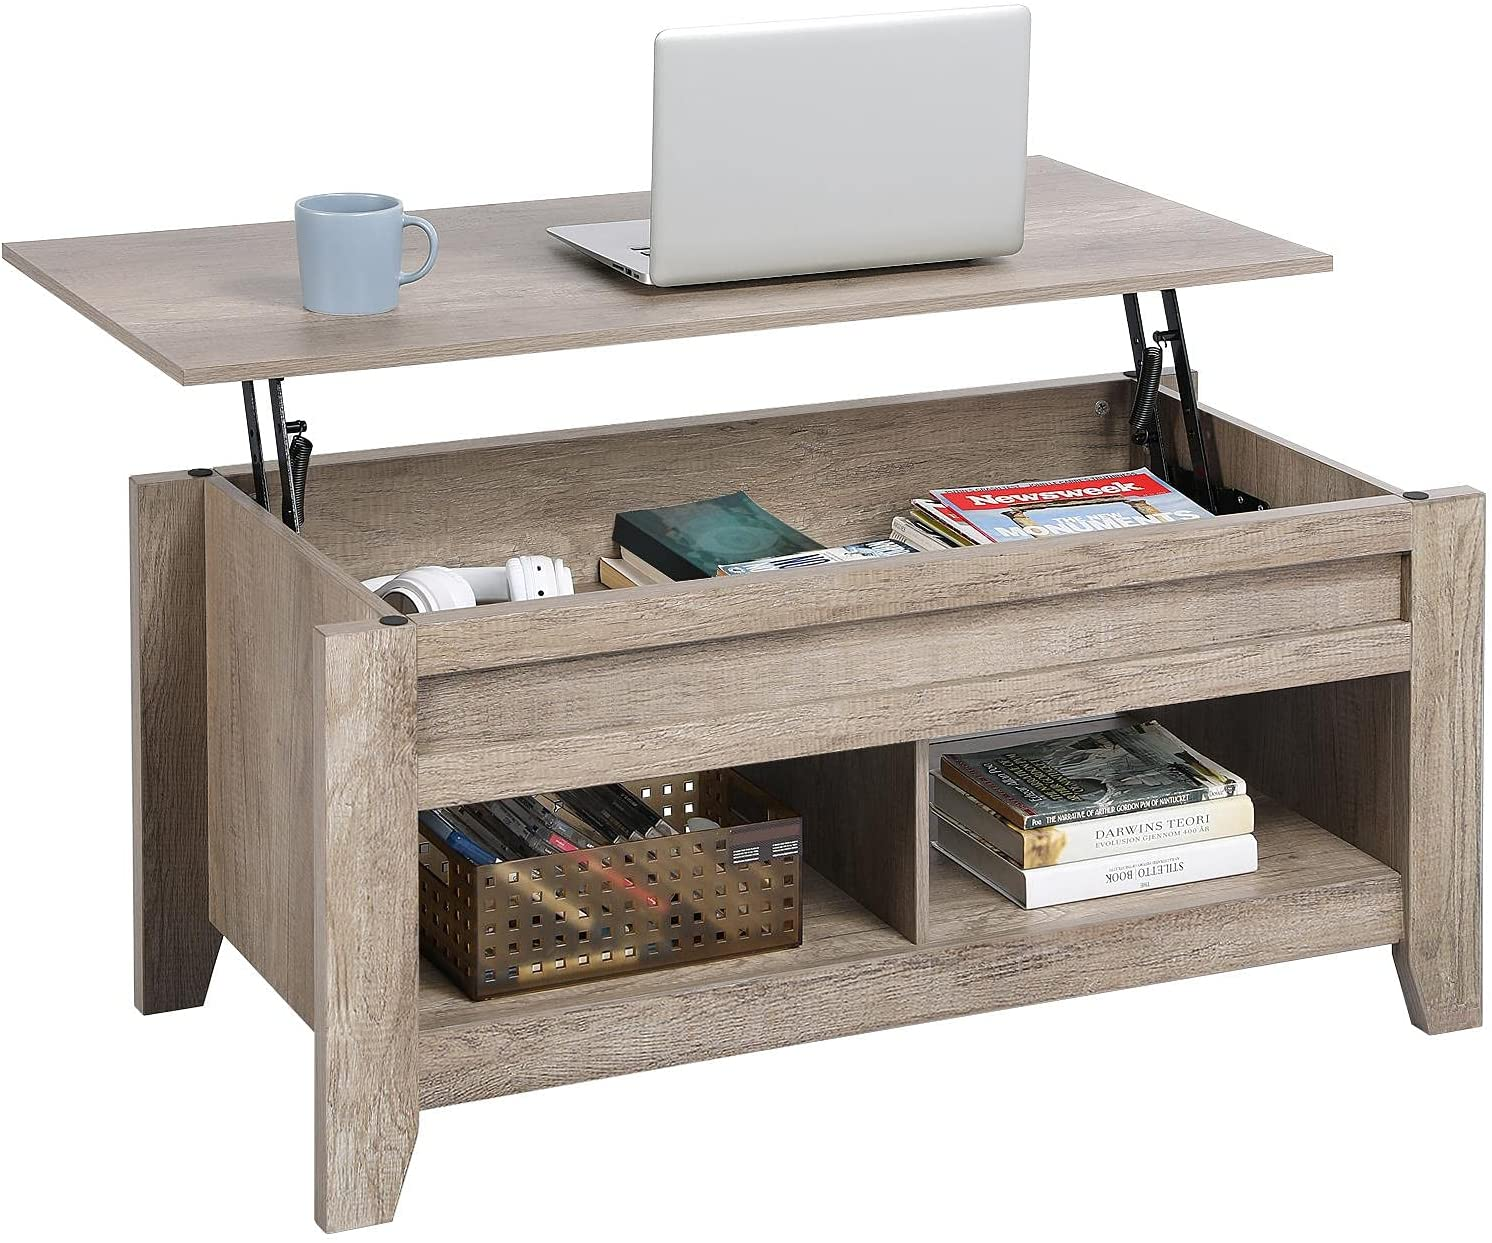 Yaheetech Lift Challenge the lowest price Top Coffee Table Max 70% OFF Compartment Hidden Storage with